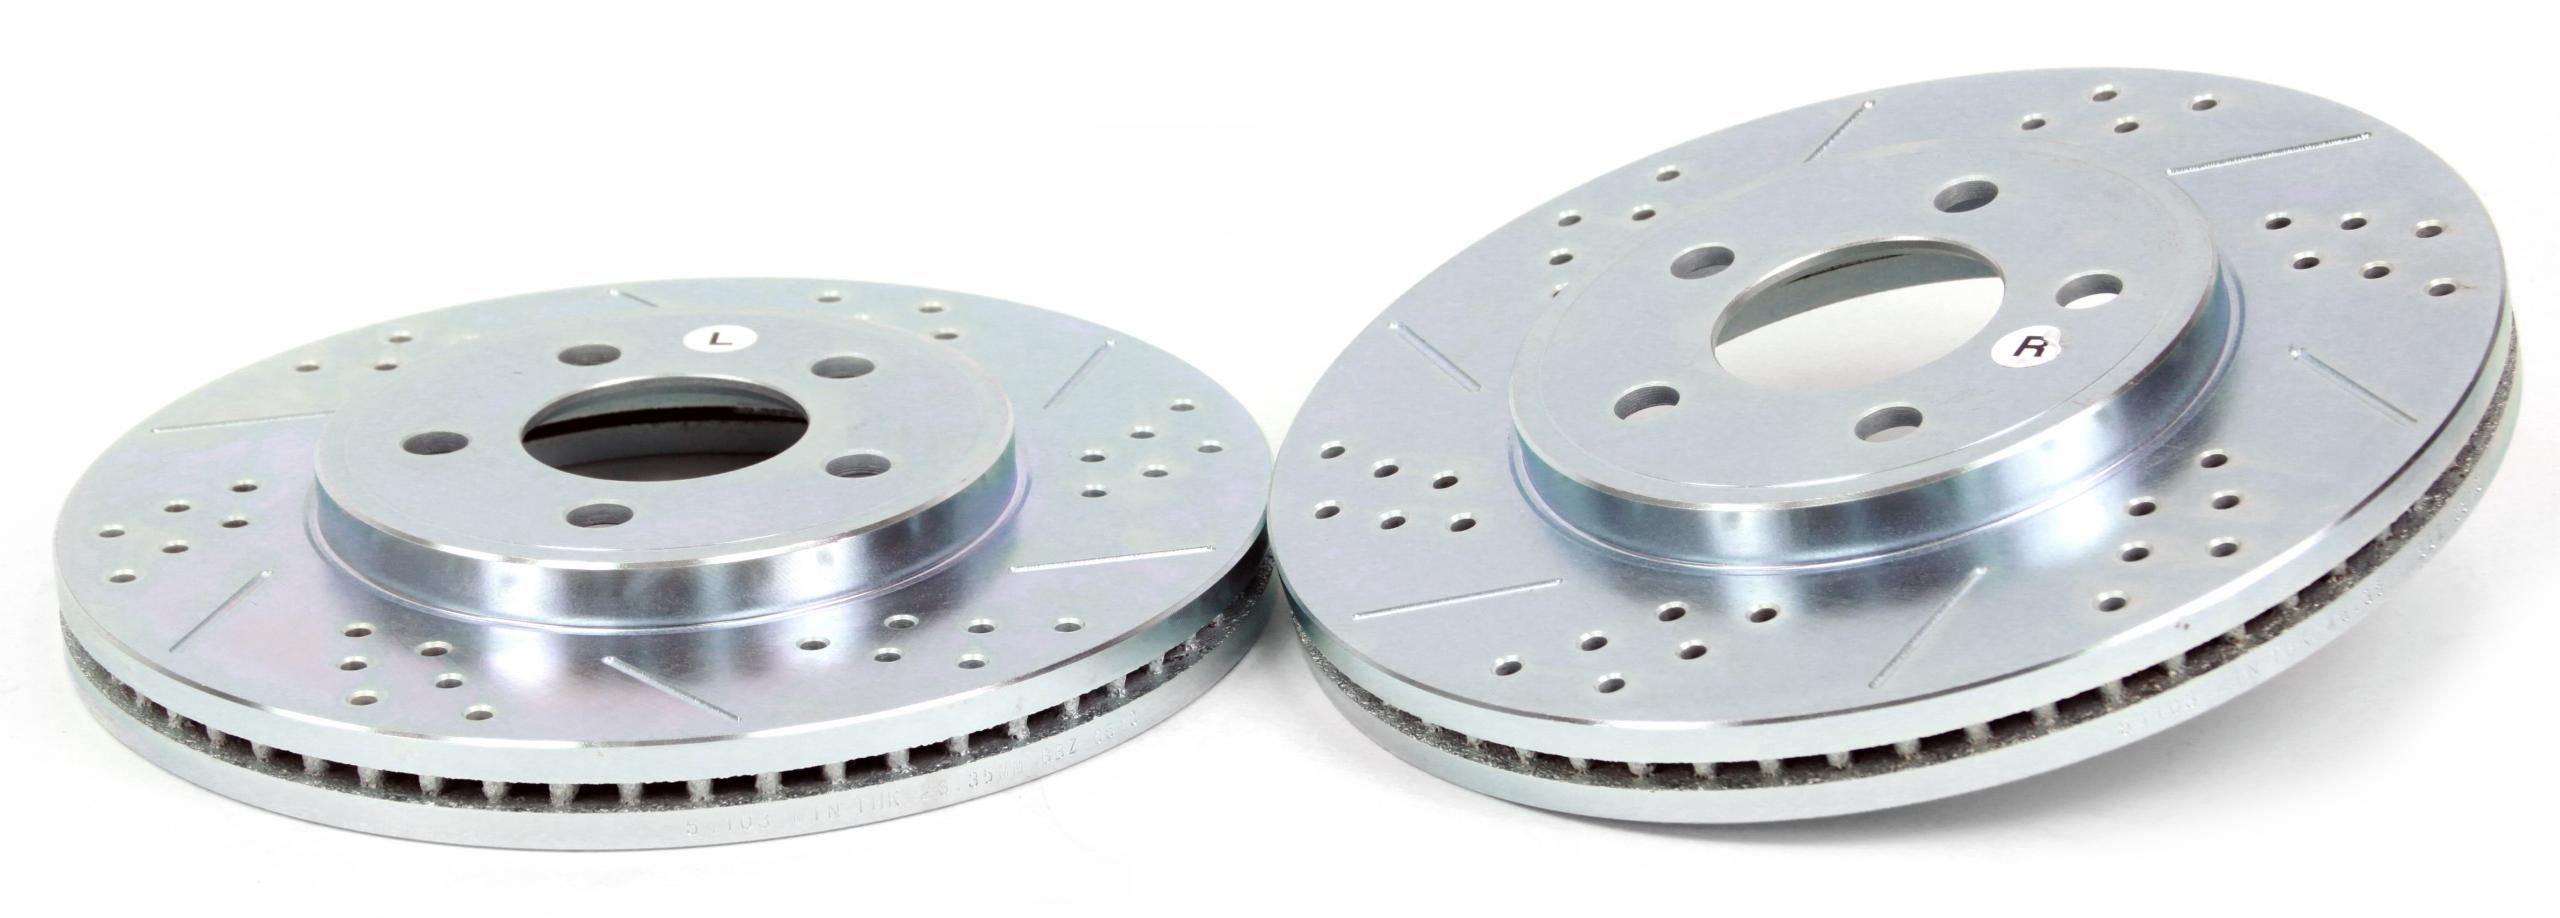 Baer Brakes Brake Rotor 12.02 Inch Front Various Ford, Lincoln, and Mercury Applications